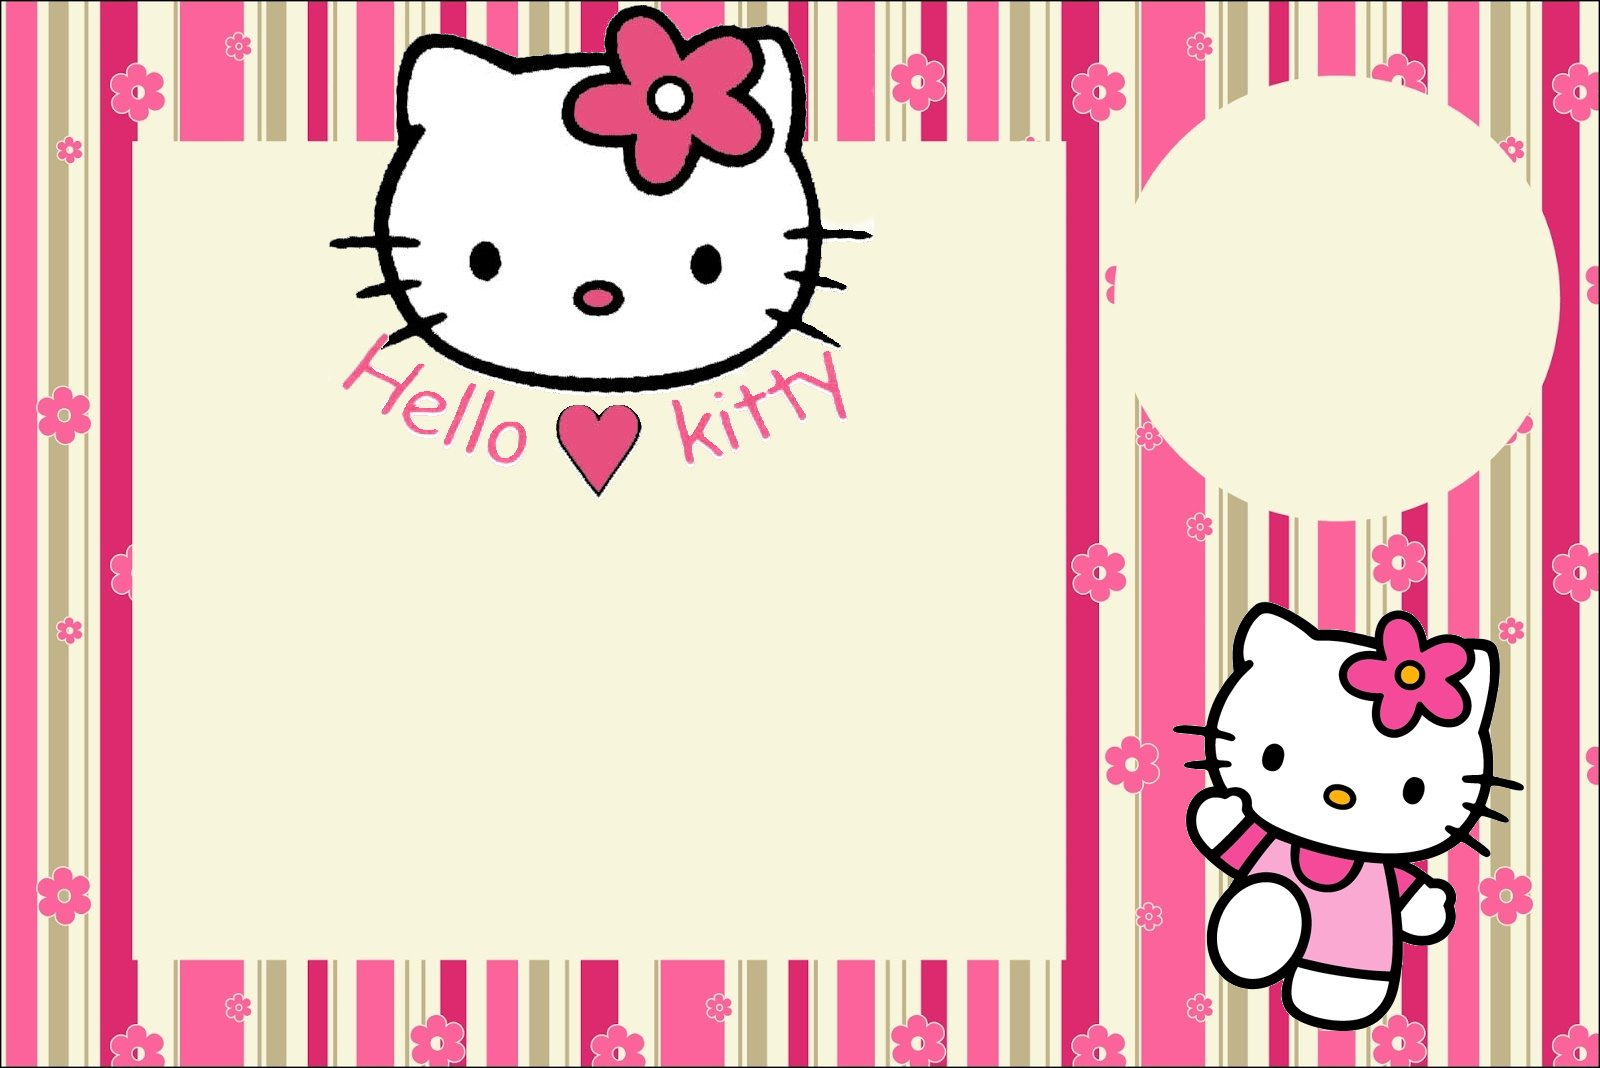 Hello Kitty With Flowers Free Printable Invitations Oh My Fiesta